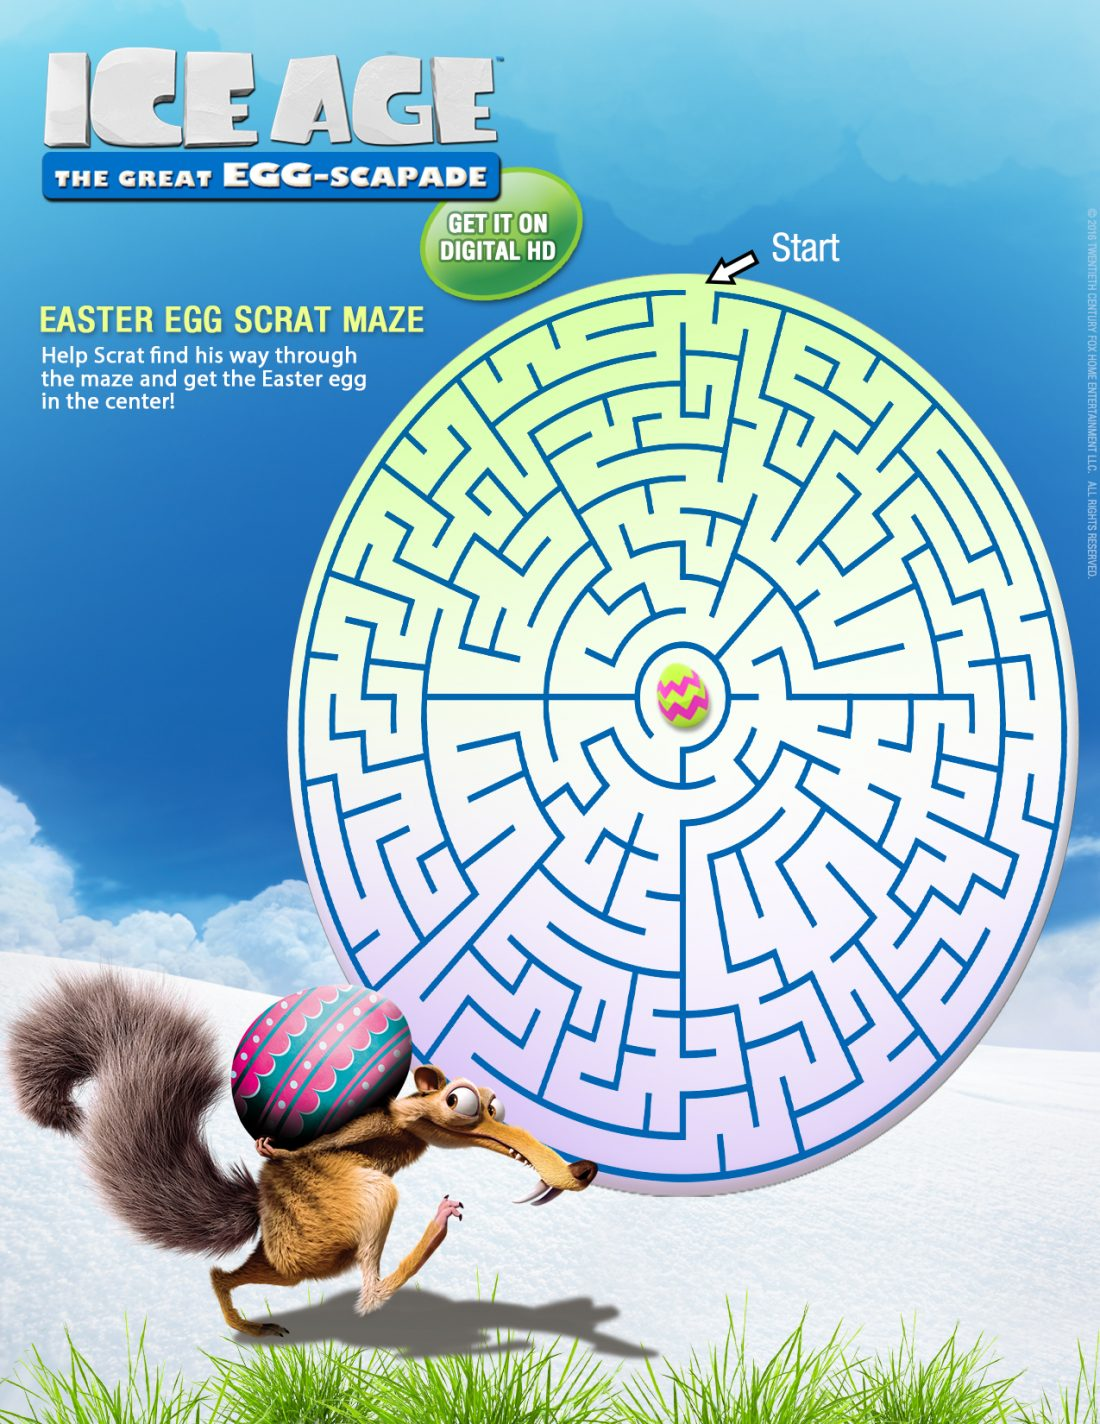 iceage_activity_maze